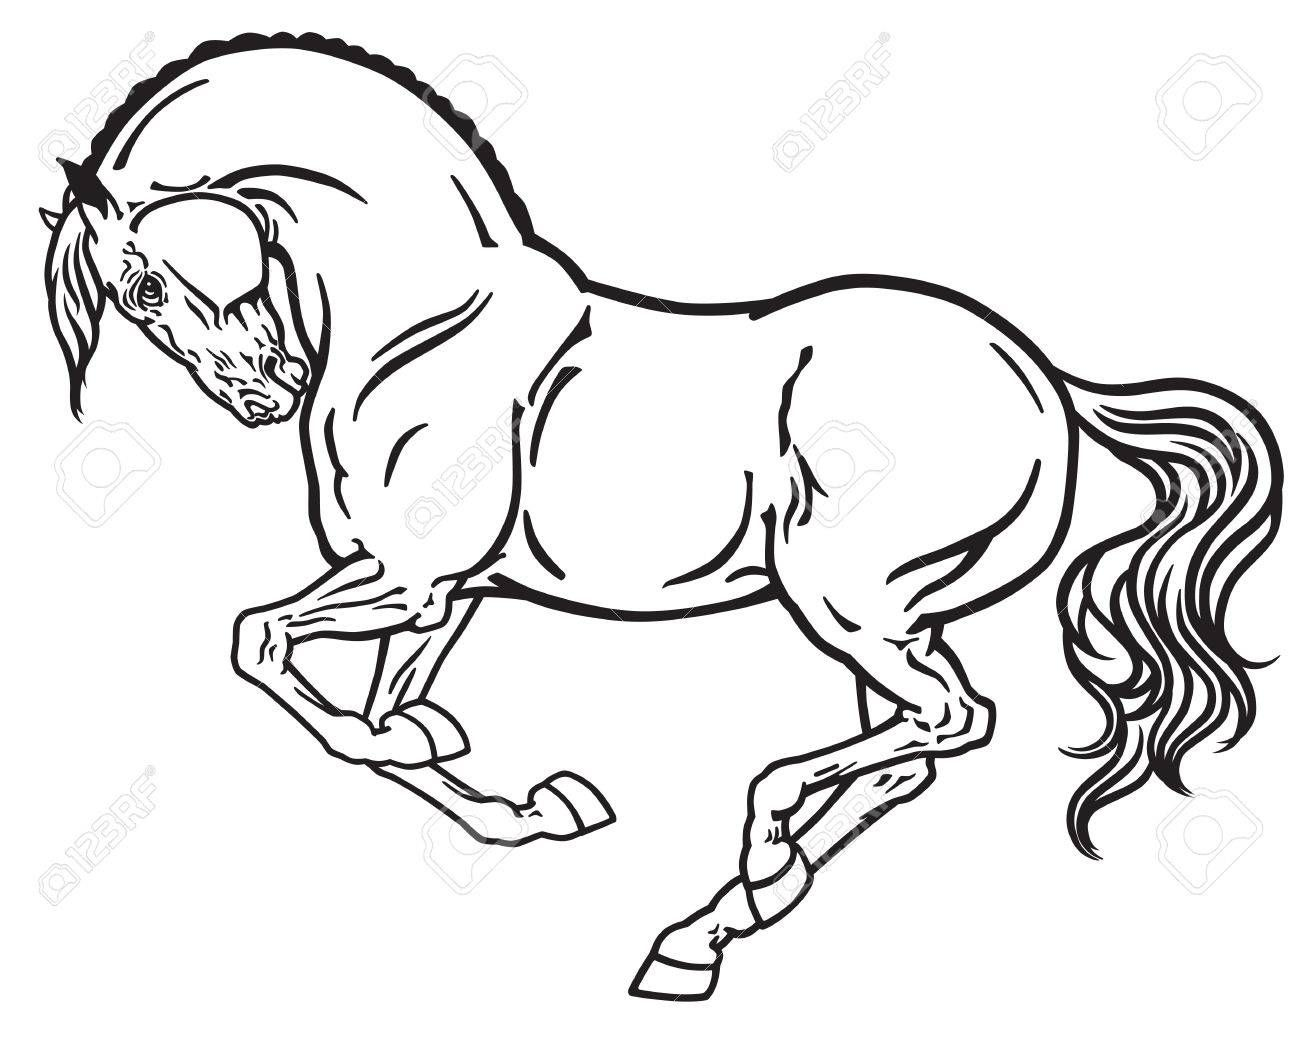 Horse Stallion In Gallop Side View Outline Black And White Vector Horse Coloring Pages Horse Outline Horses [ 1054 x 1300 Pixel ]